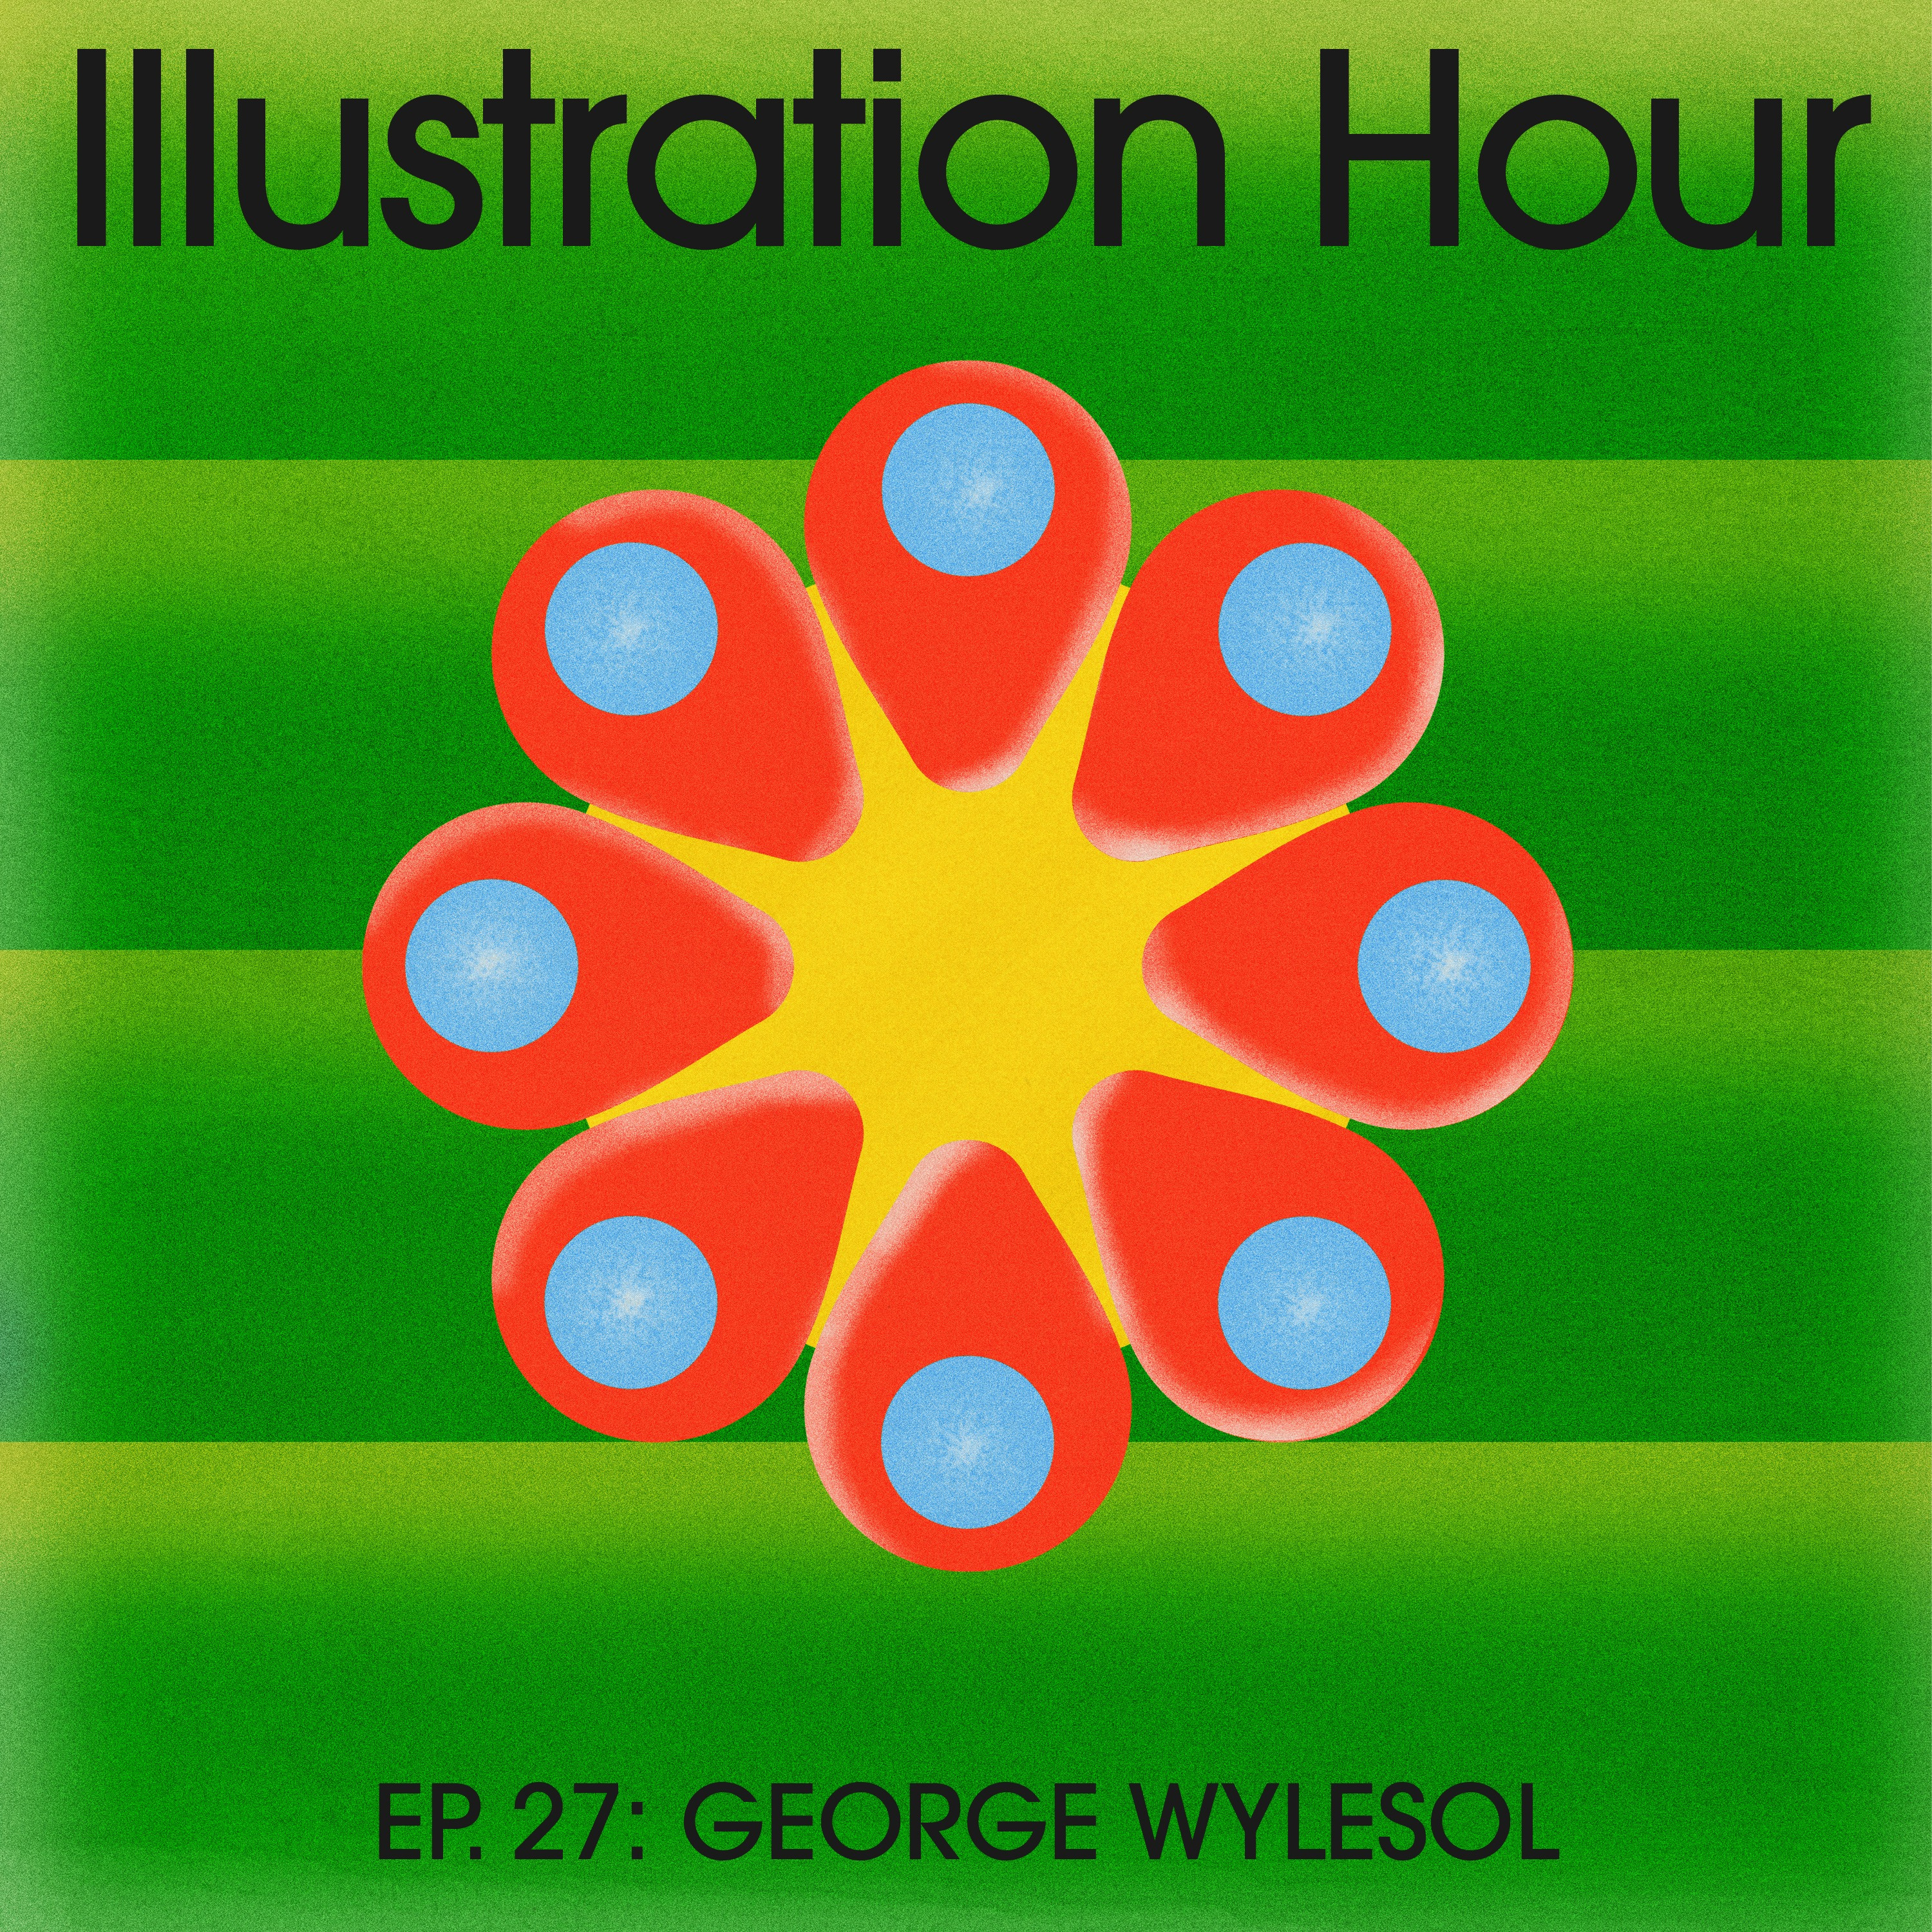 27: George Wylesol – Do Work that Makes You Happy